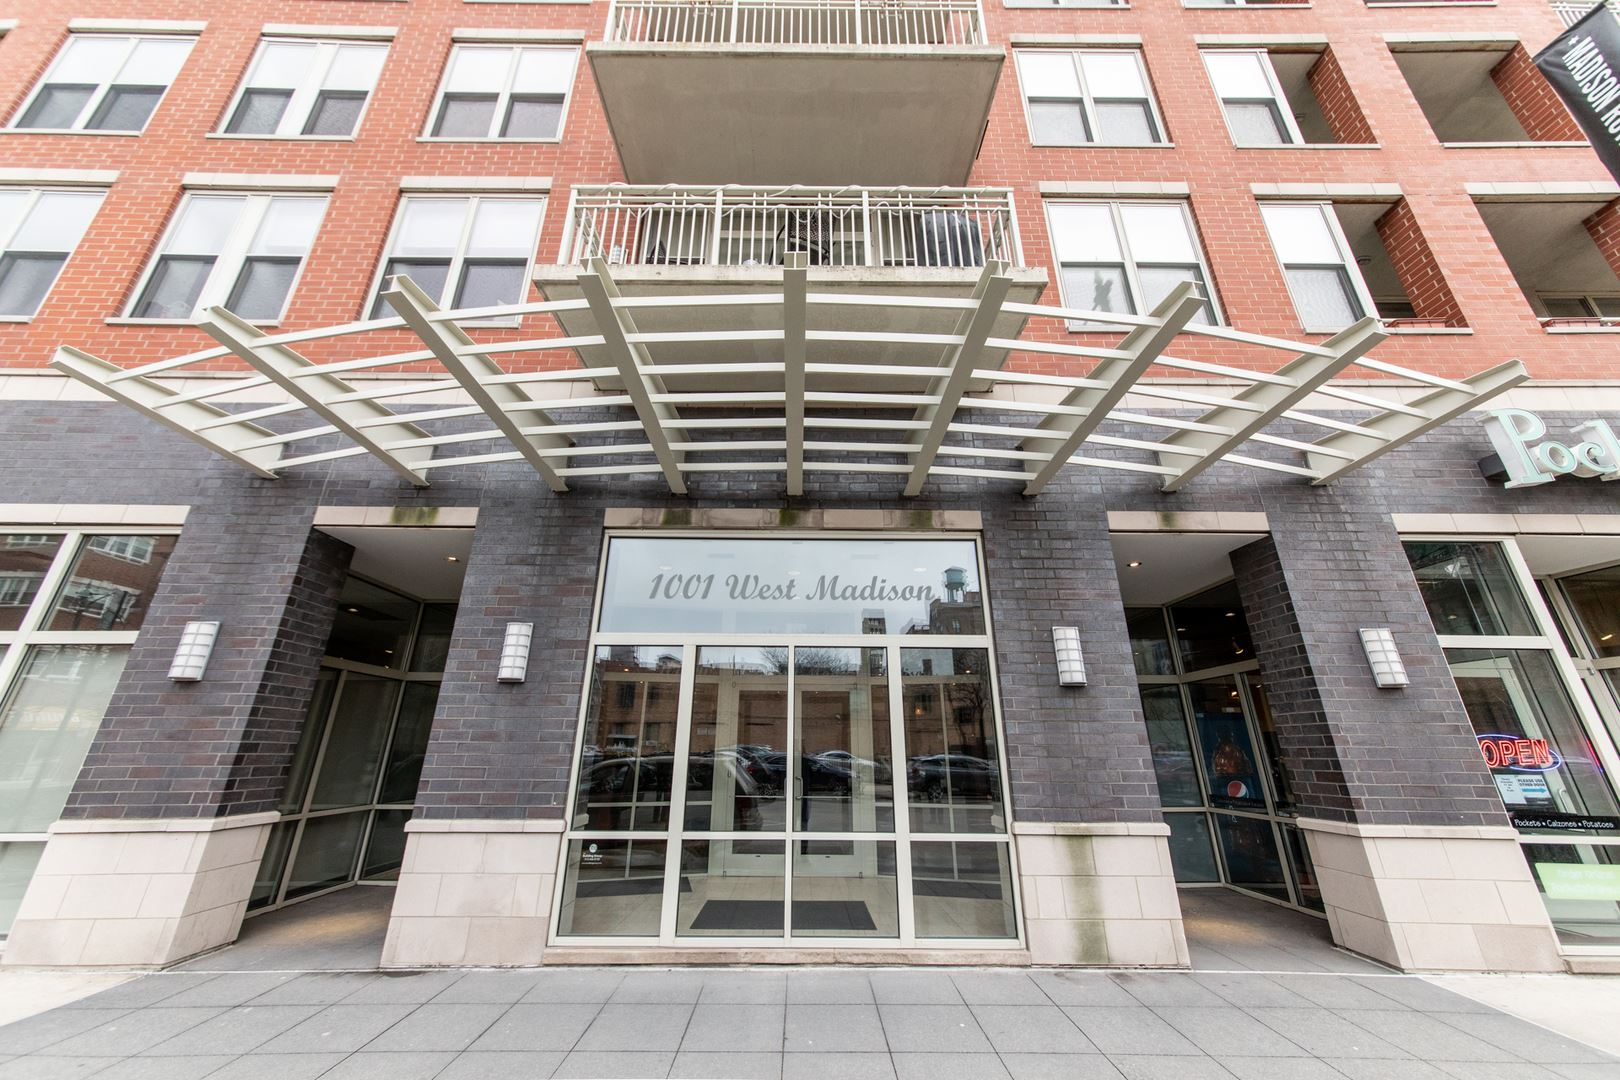 1001 W MADISON Street #302, Chicago, IL 60607 - #: 10791175